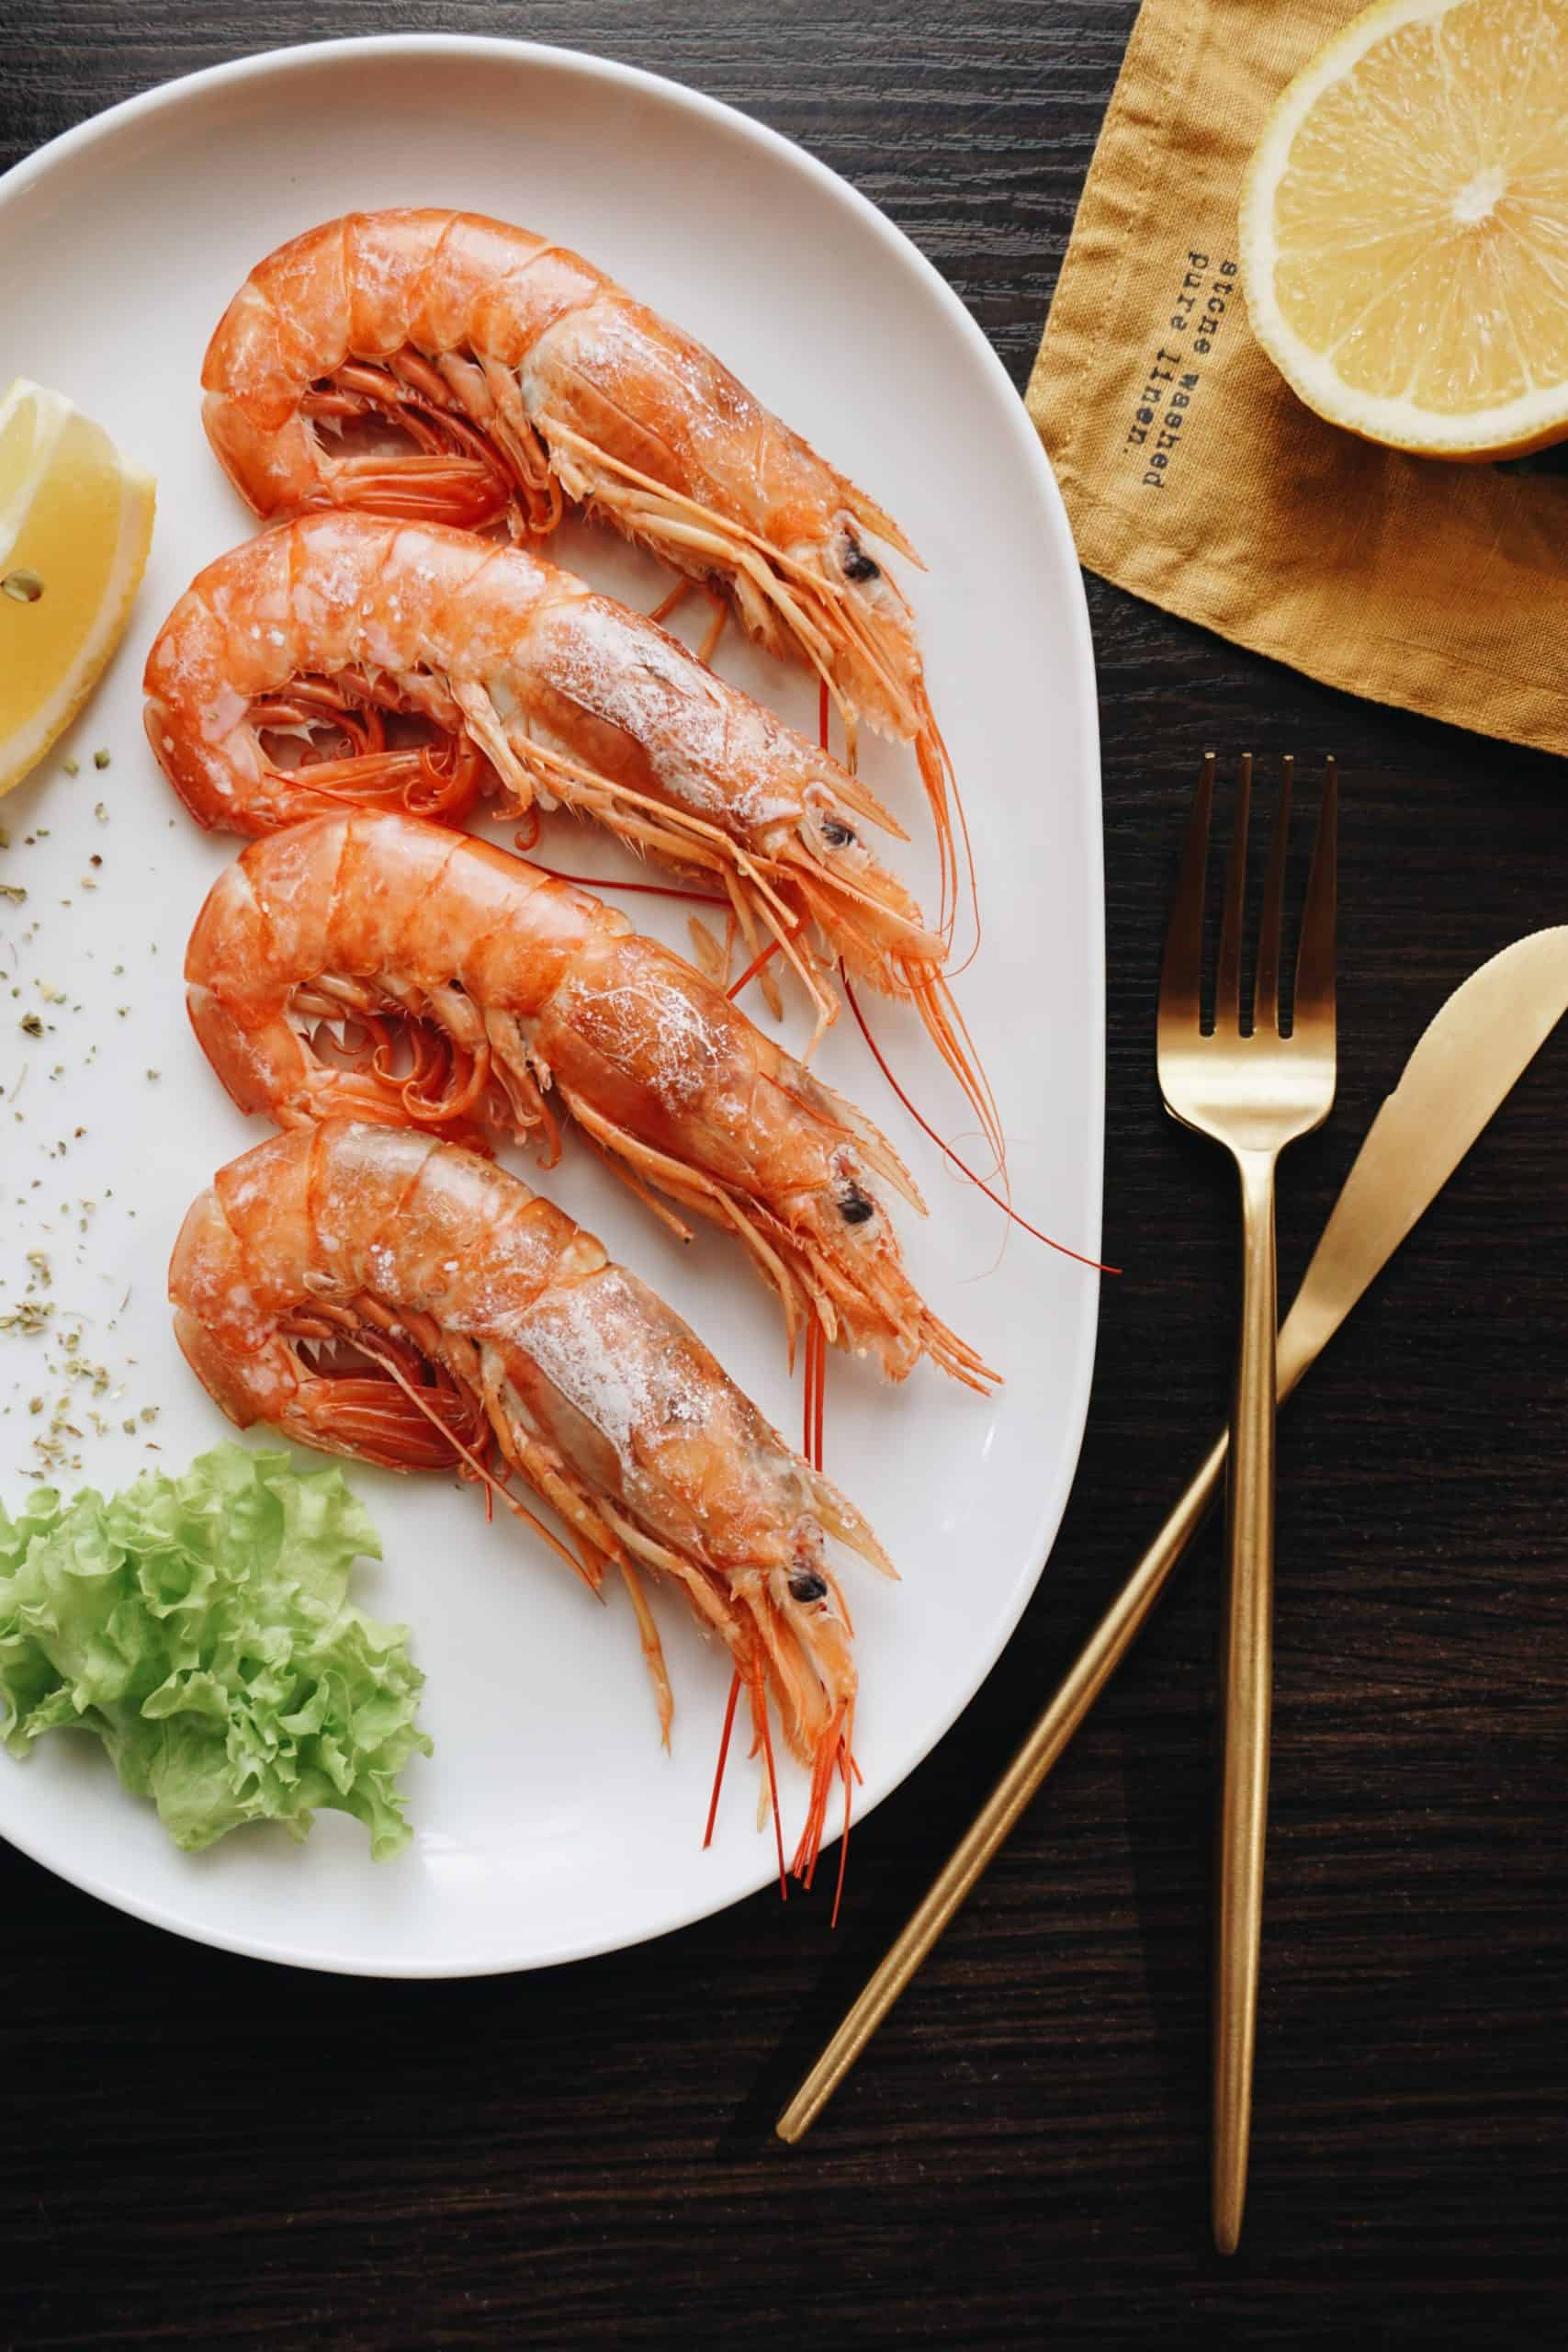 Healthy Lifestyle Habits: Eating Healthy Seafood